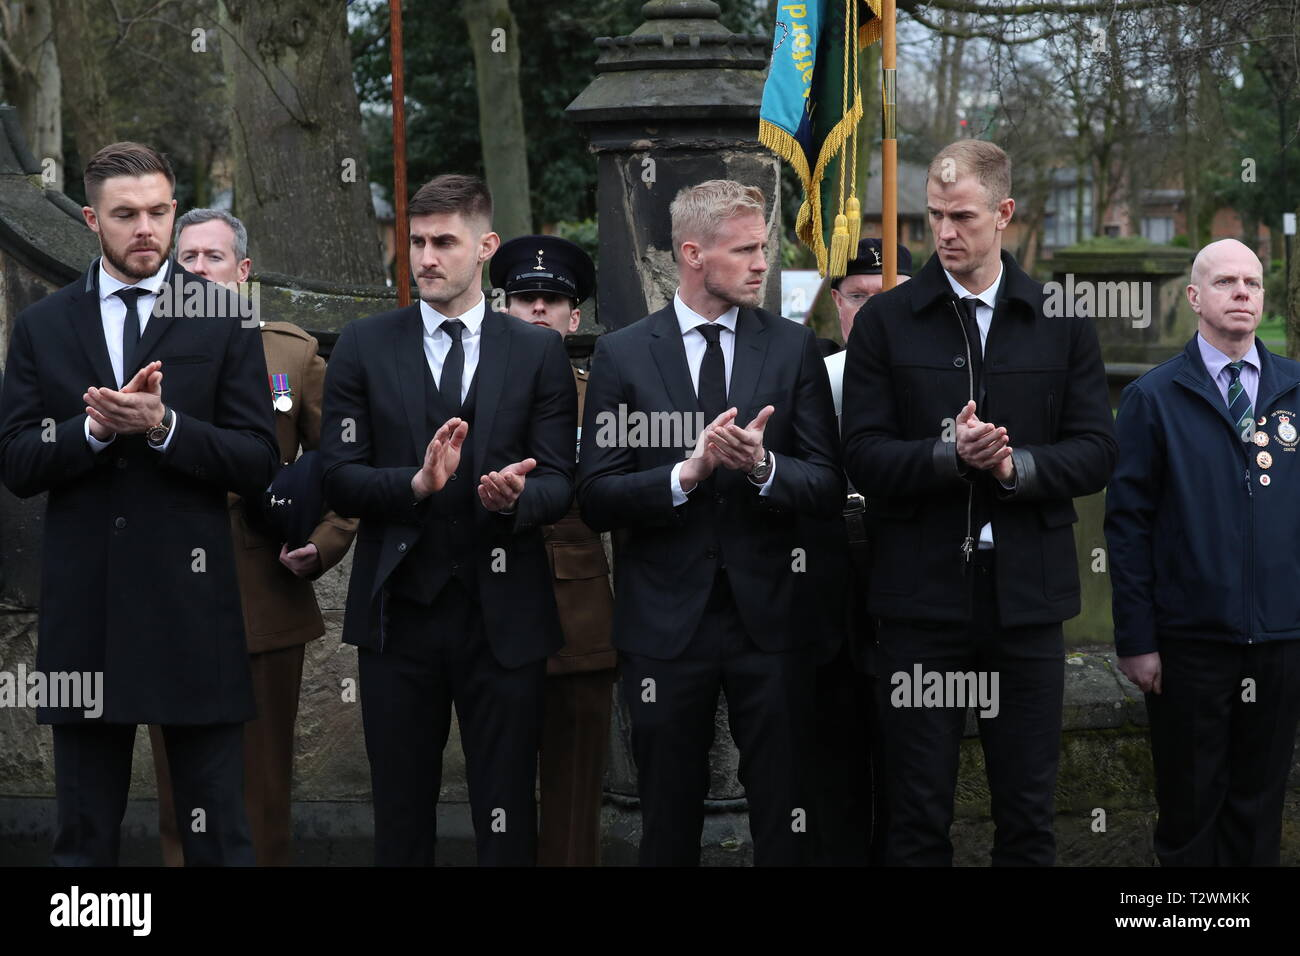 The funeral of England's World Cup winning goalkeeper Gordon Banks at Stoke Minster  Featuring: Jack Butland, Joe Hart, Joe Anyon, Kasper Schmeichel Where: Stoke-upon-Trent, Staffordshire, United Kingdom When: 04 Mar 2019 Credit: John Rainford/WENN - Stock Image